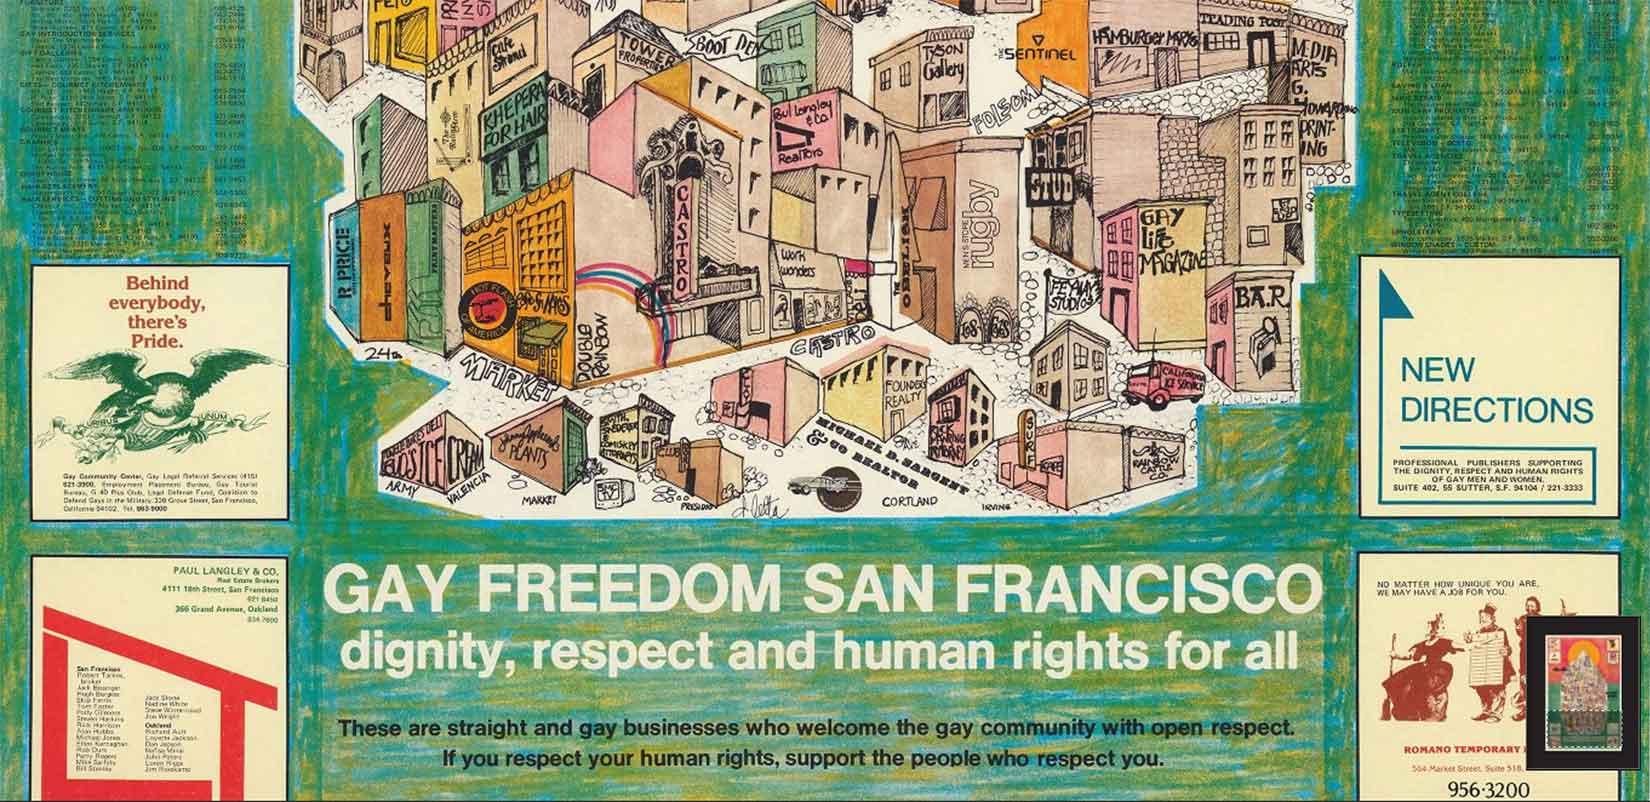 gay-freedom-san-francisco-david-rumsey